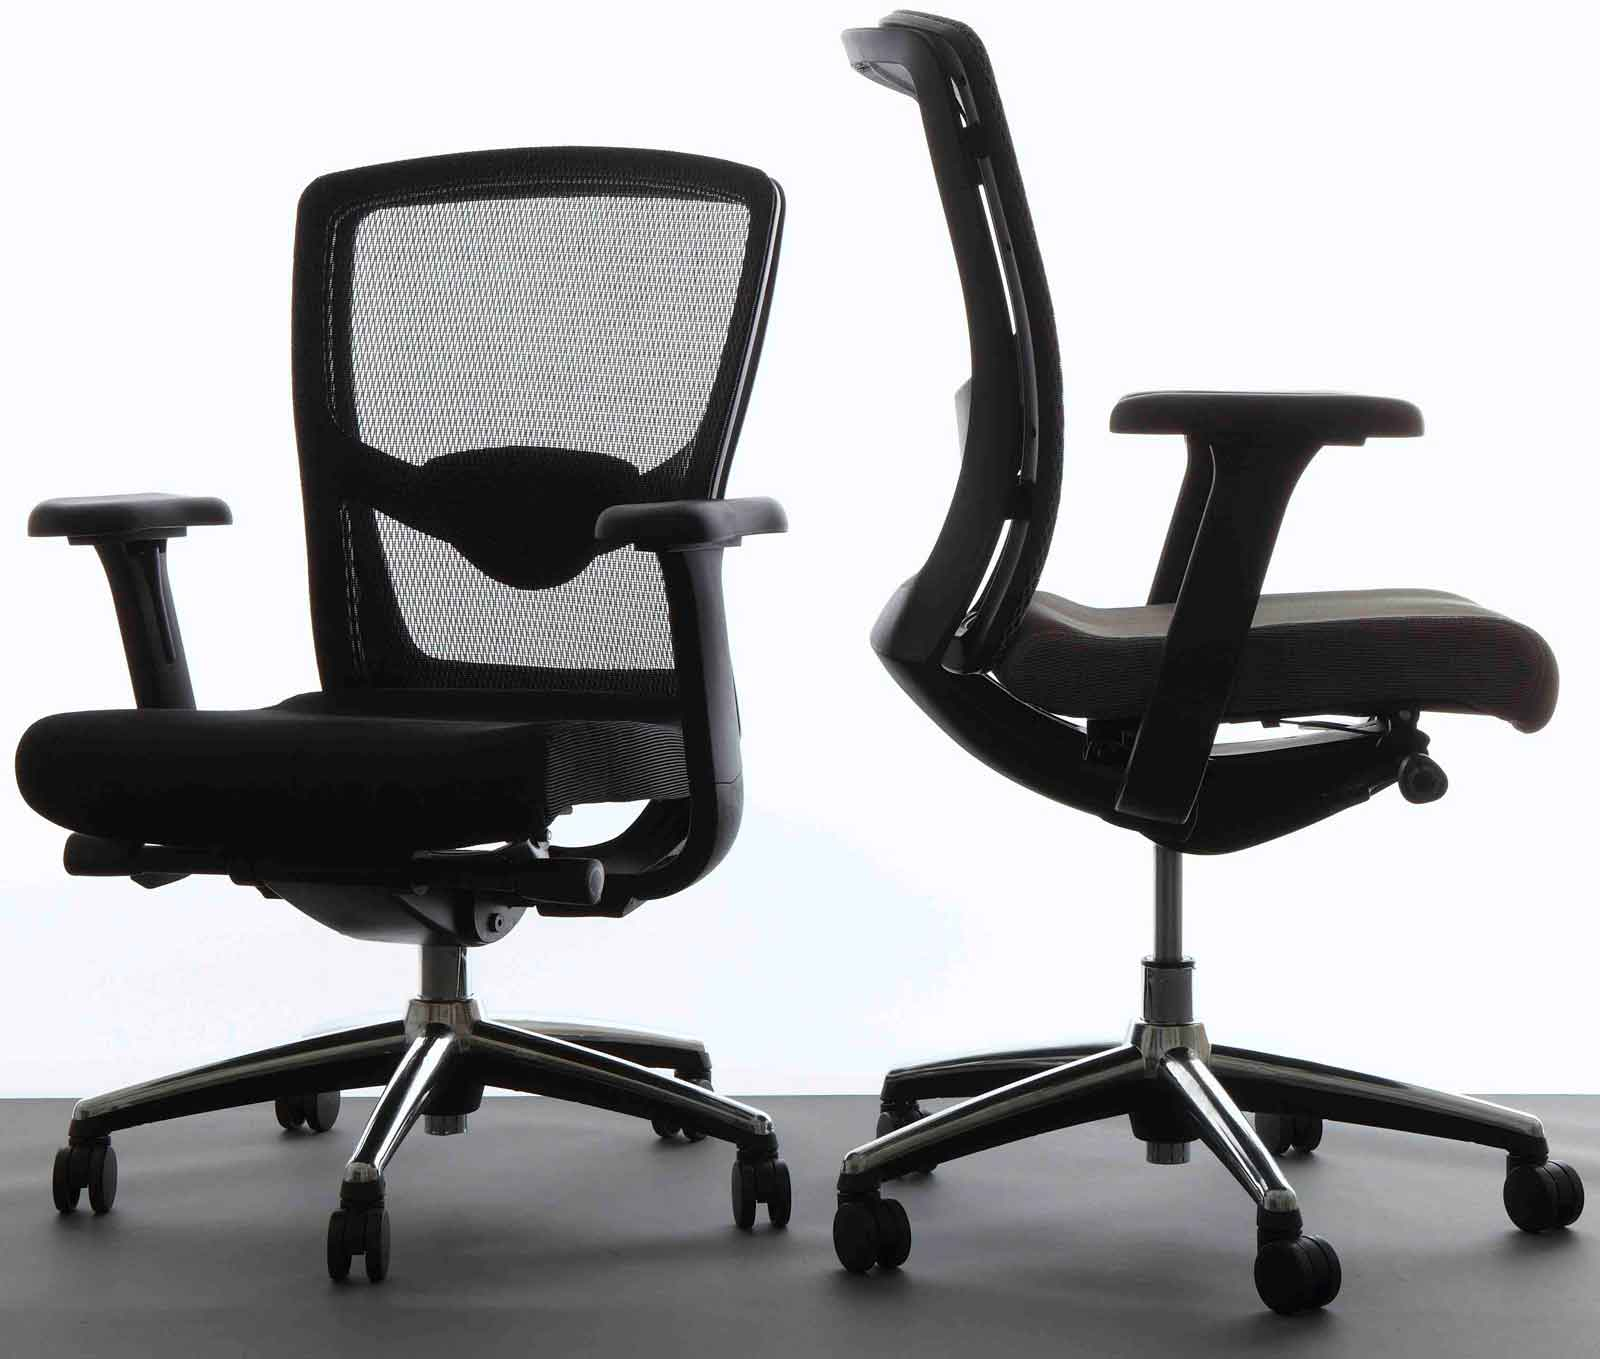 Chair Computer Ergonomic Computer Desk Chairs Office Furniture